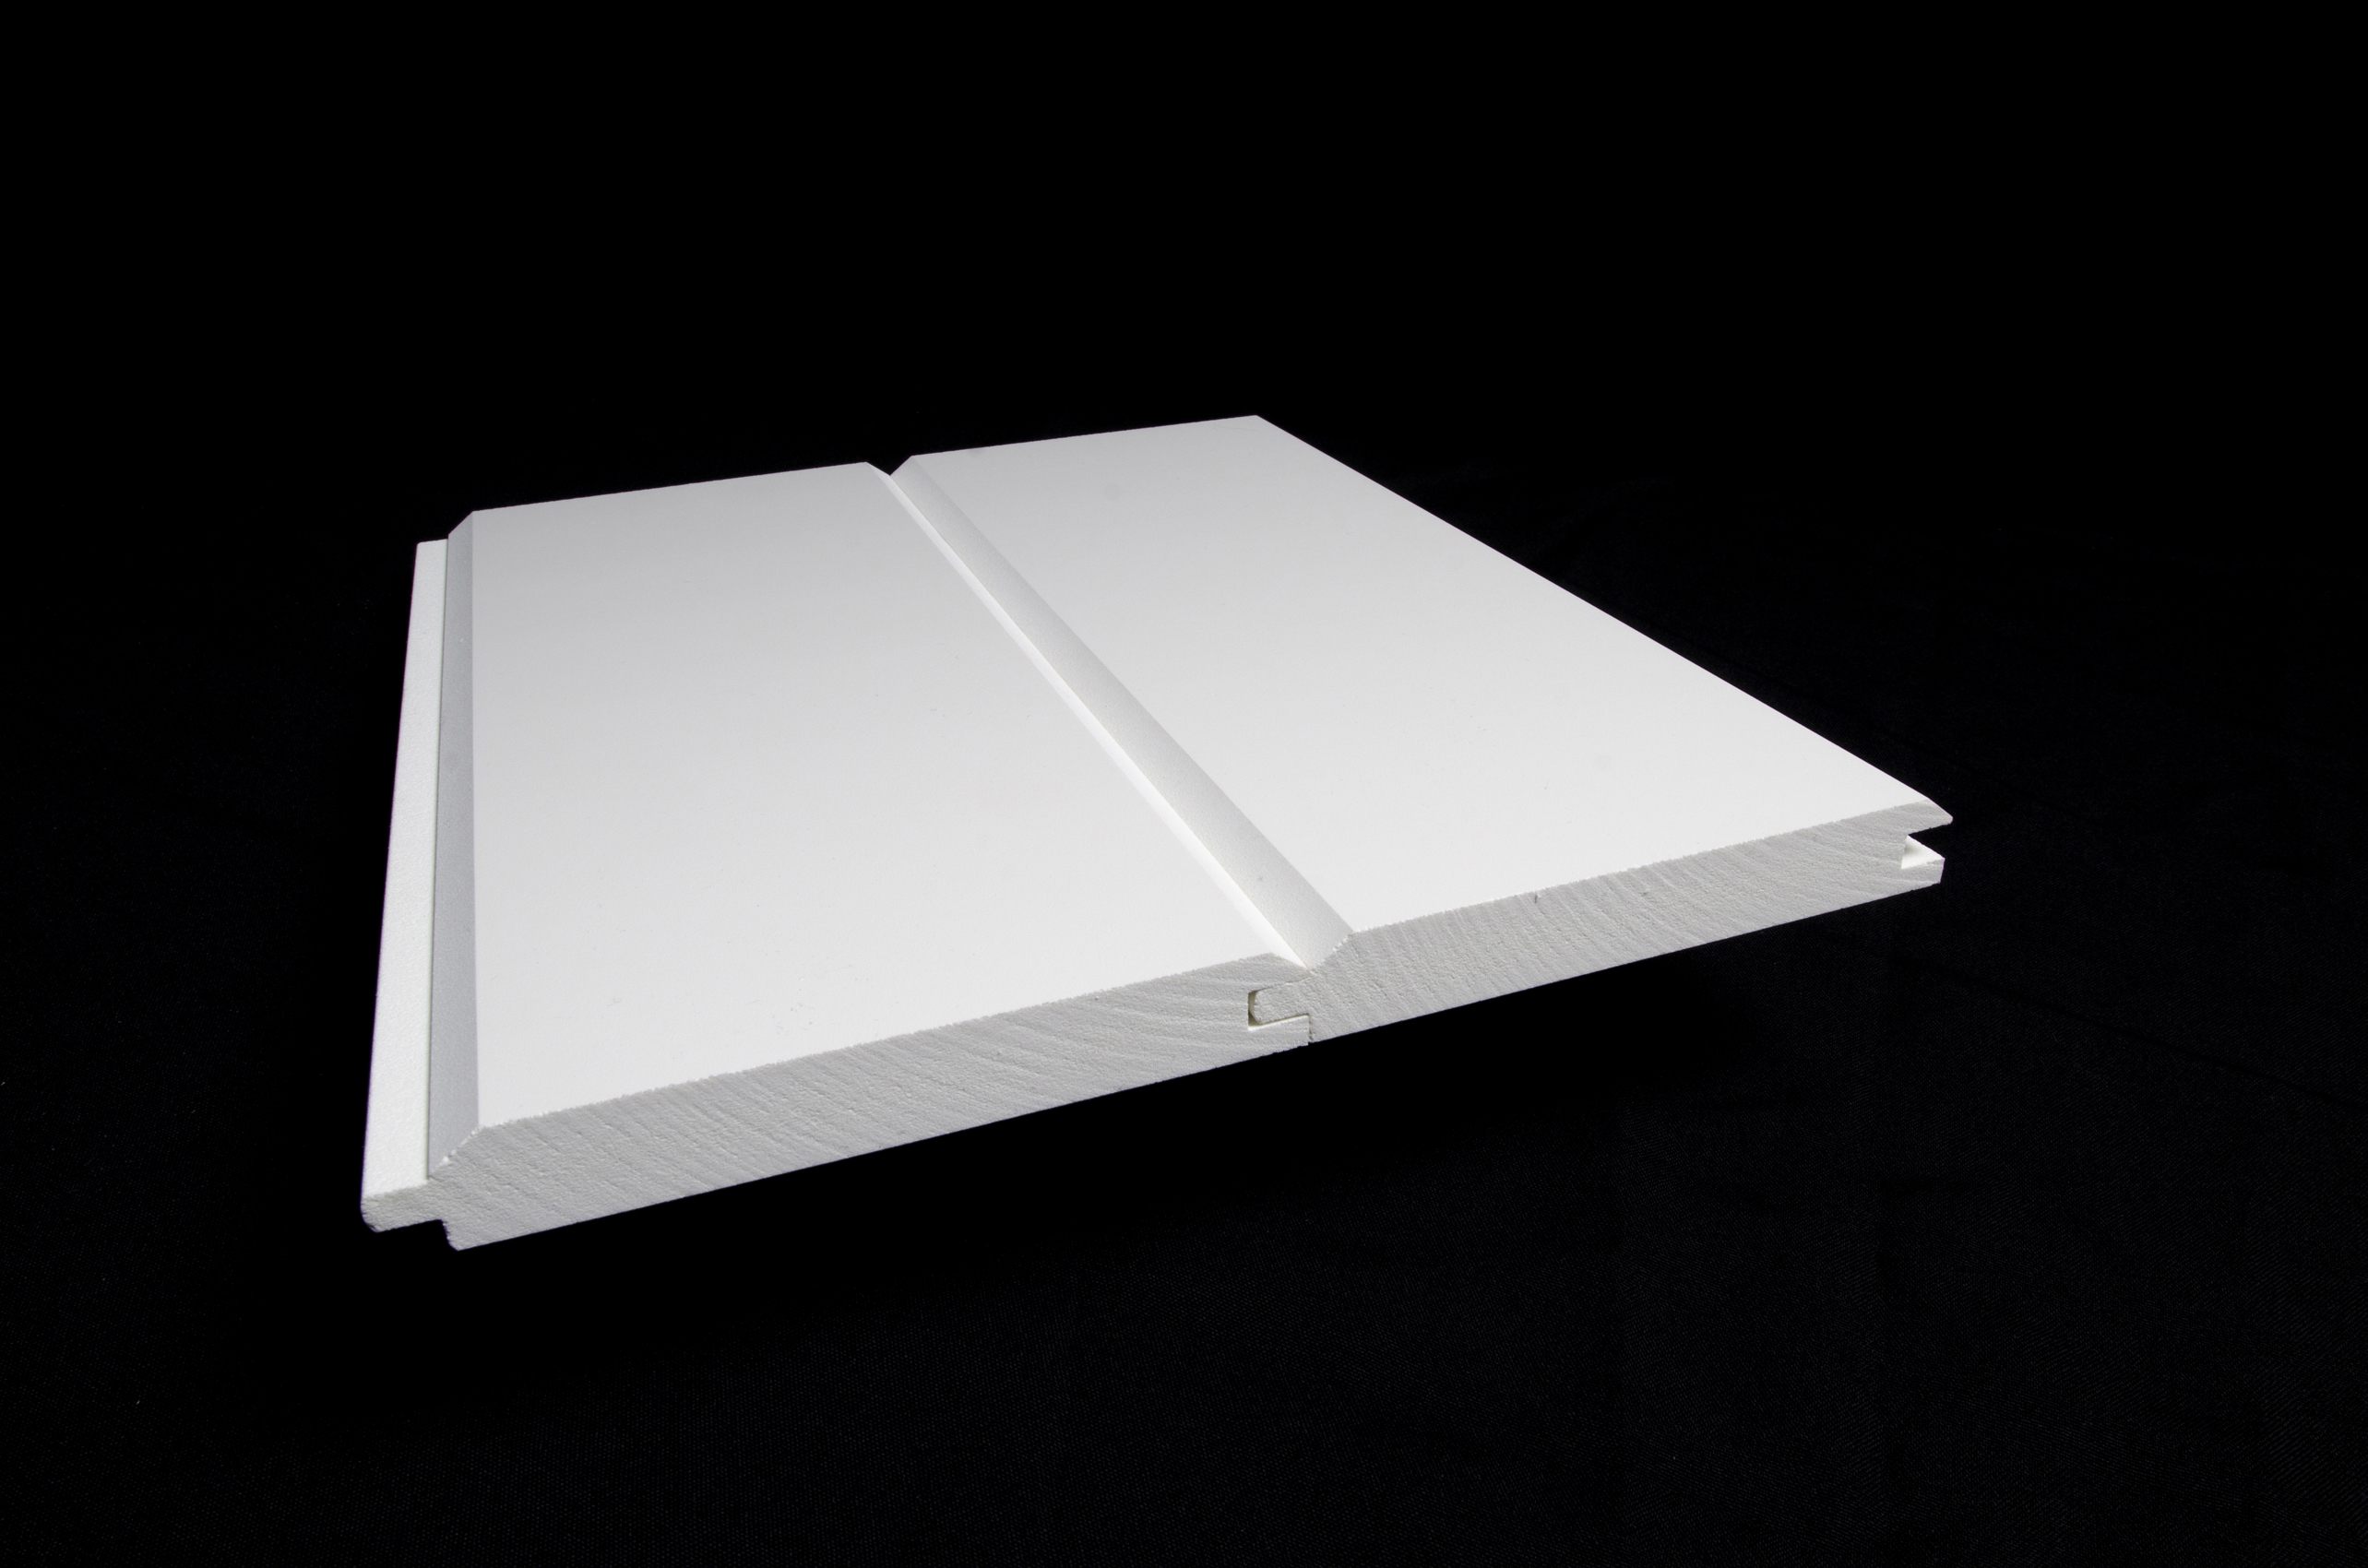 Versatex Leader In Pvc Tongue And Groove Boards